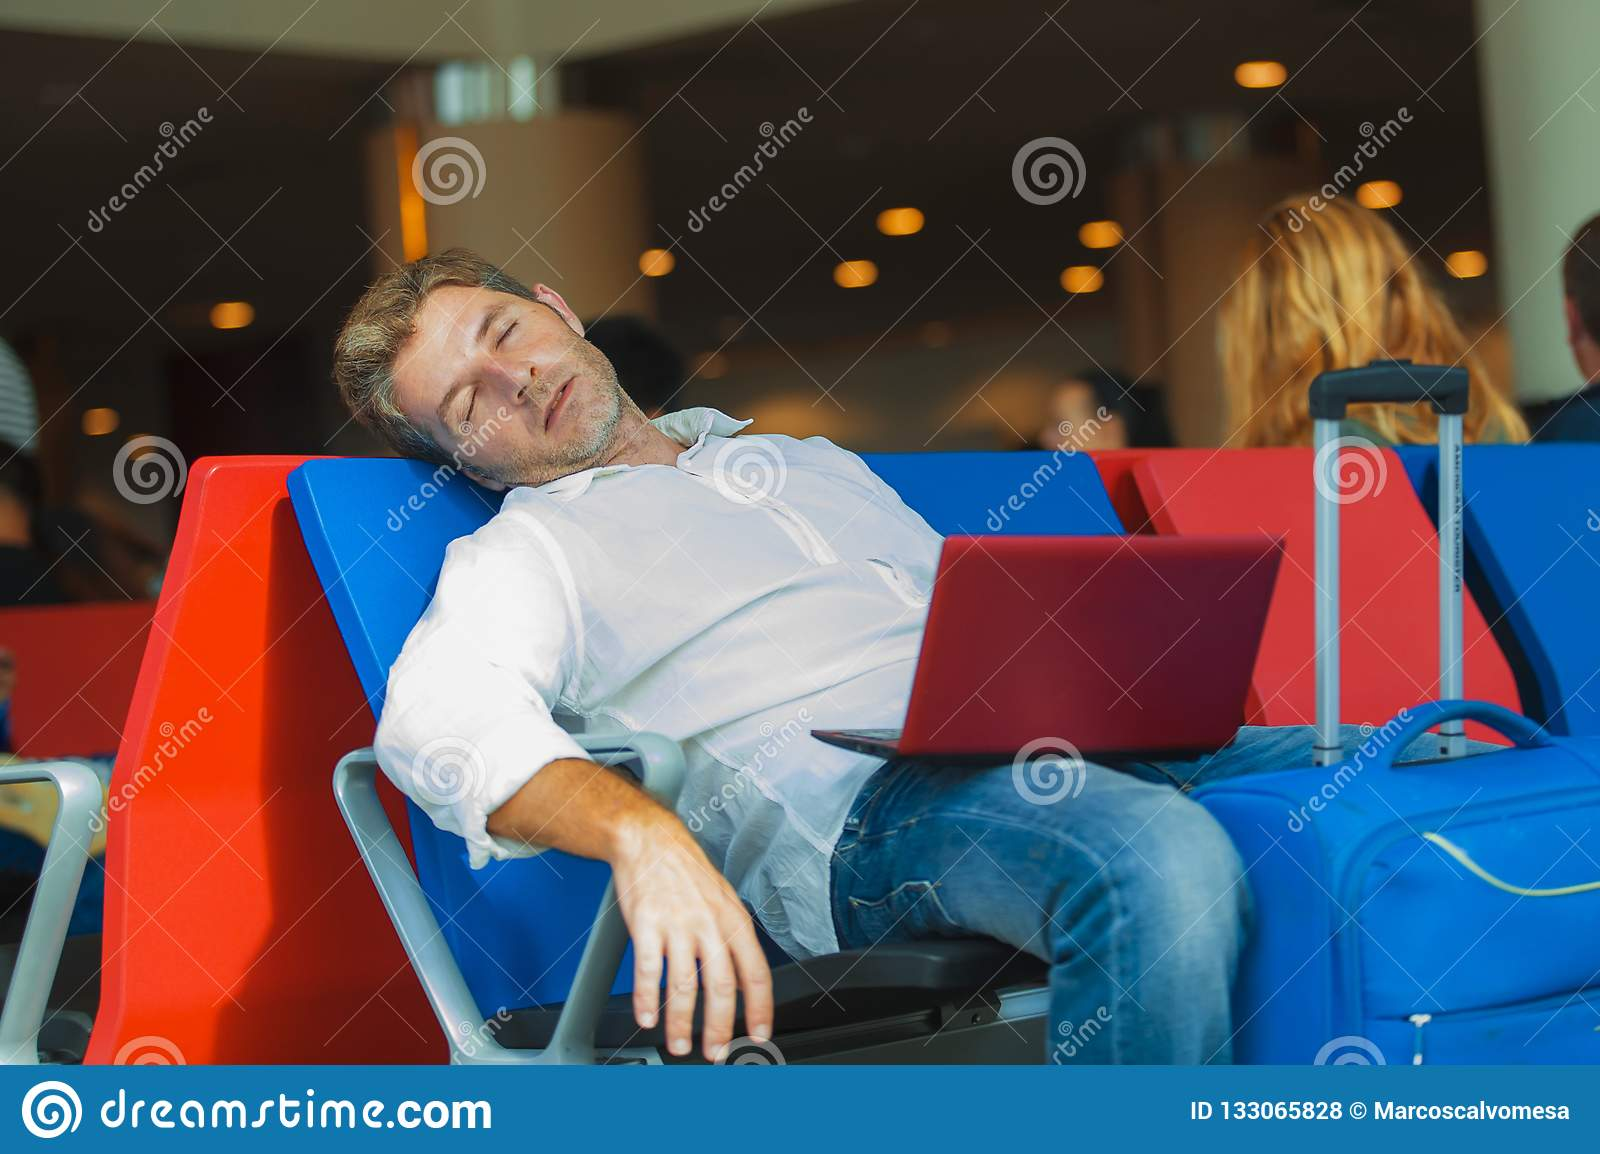 Attractive and tired traveler man with luggage taking a nap sleeping while working with laptop computer waiting for flight at